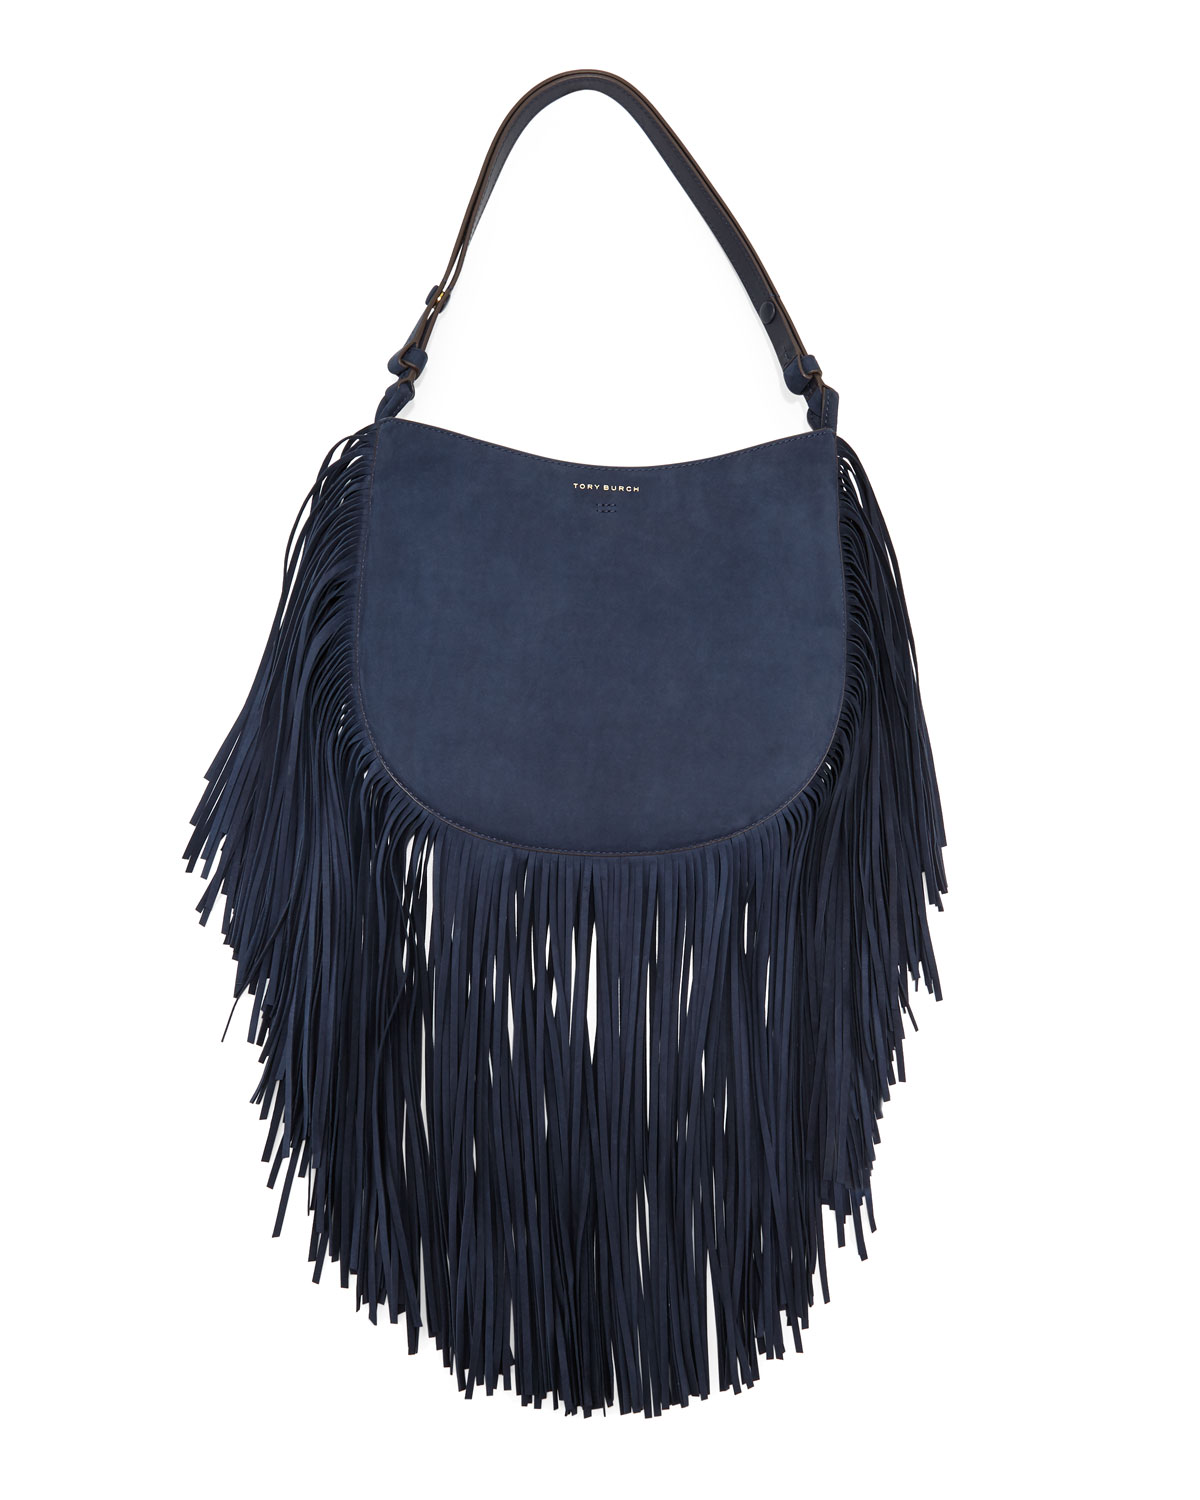 de16cb87f30 Tory Burch Suede Fringe Hobo Bag